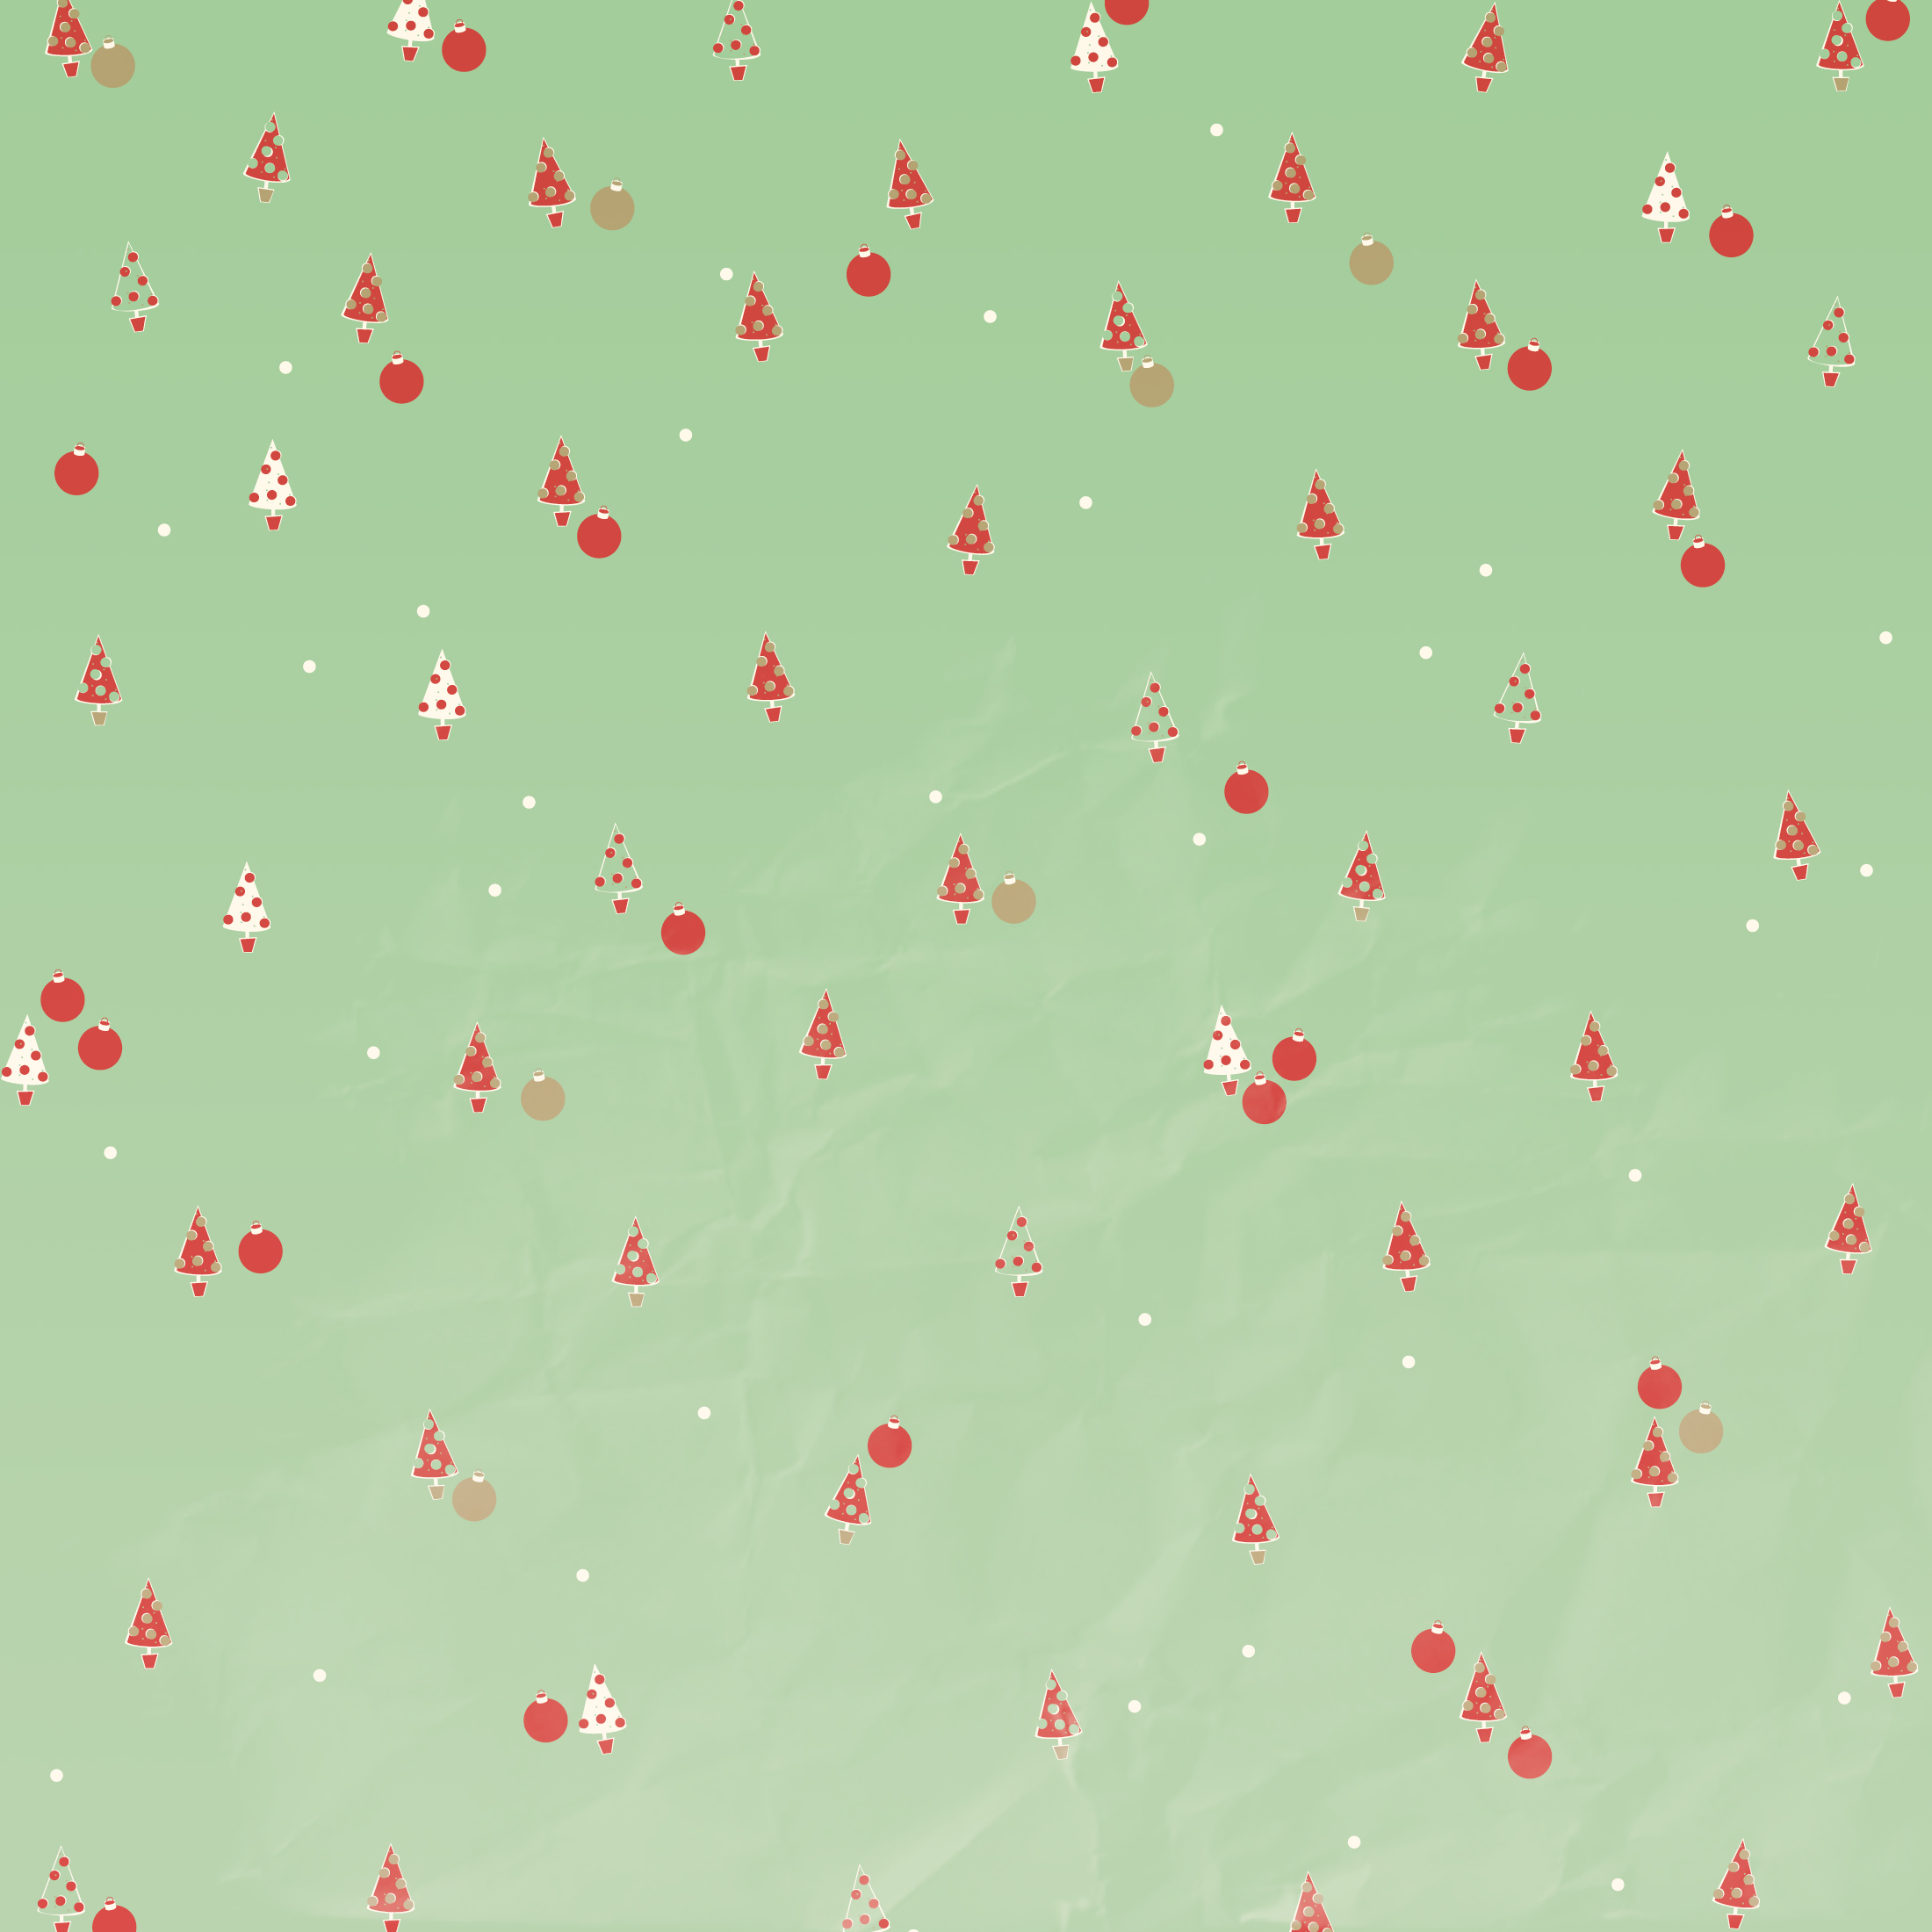 75+] Cute Christmas Background on WallpaperSafari